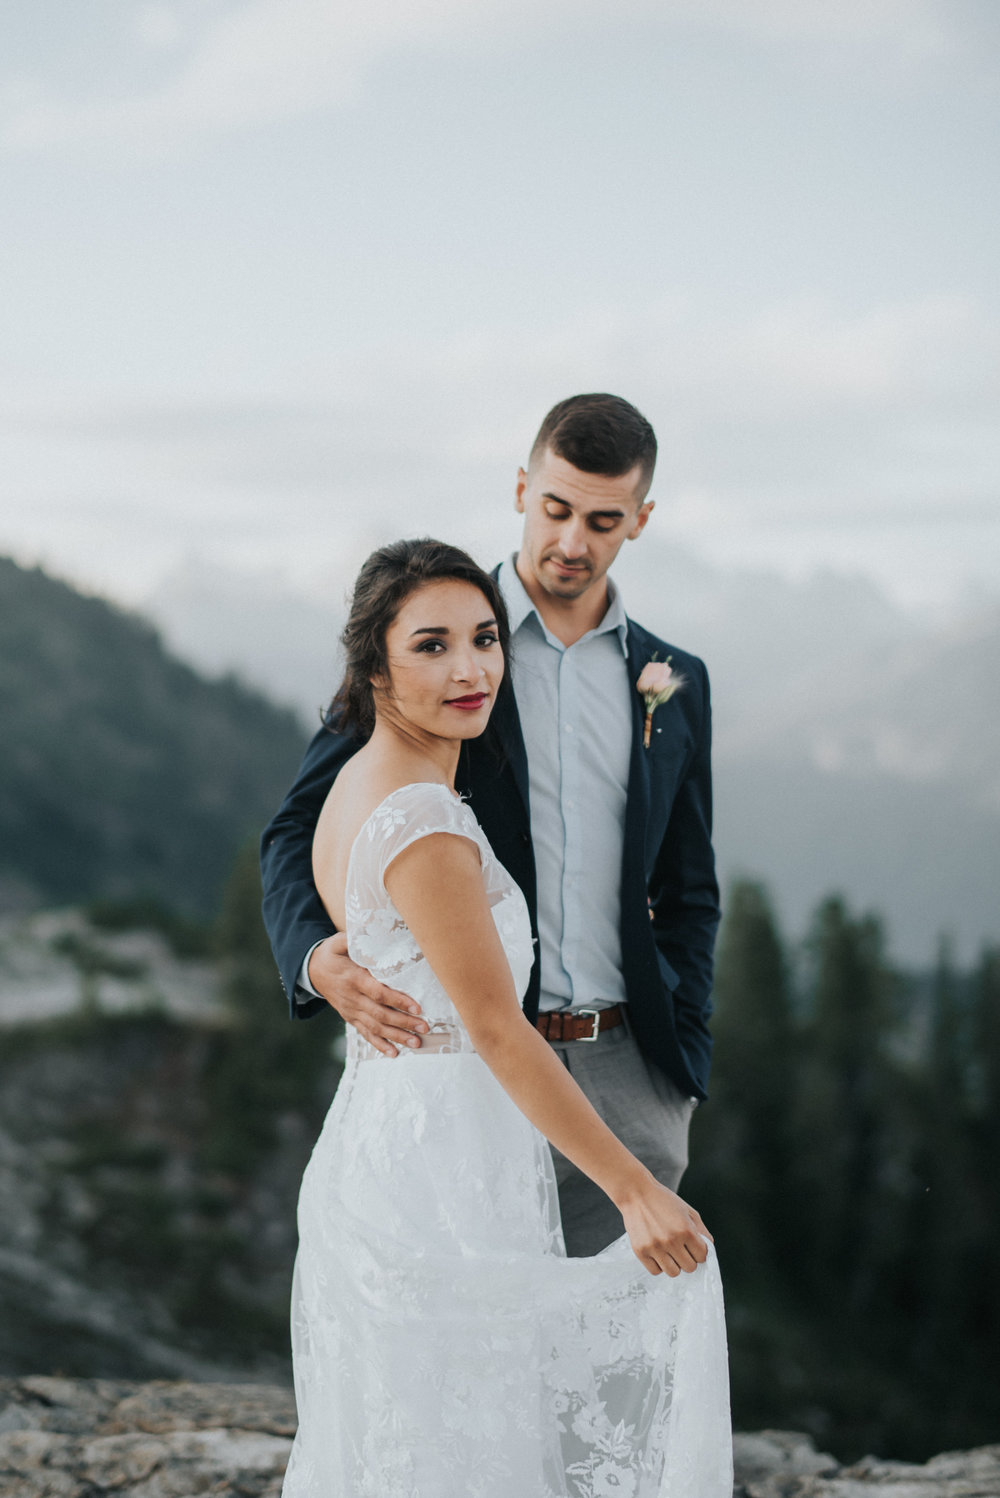 Styled Elopement at Artist Point, Mount Baker Washington | Alyssa & Ethan